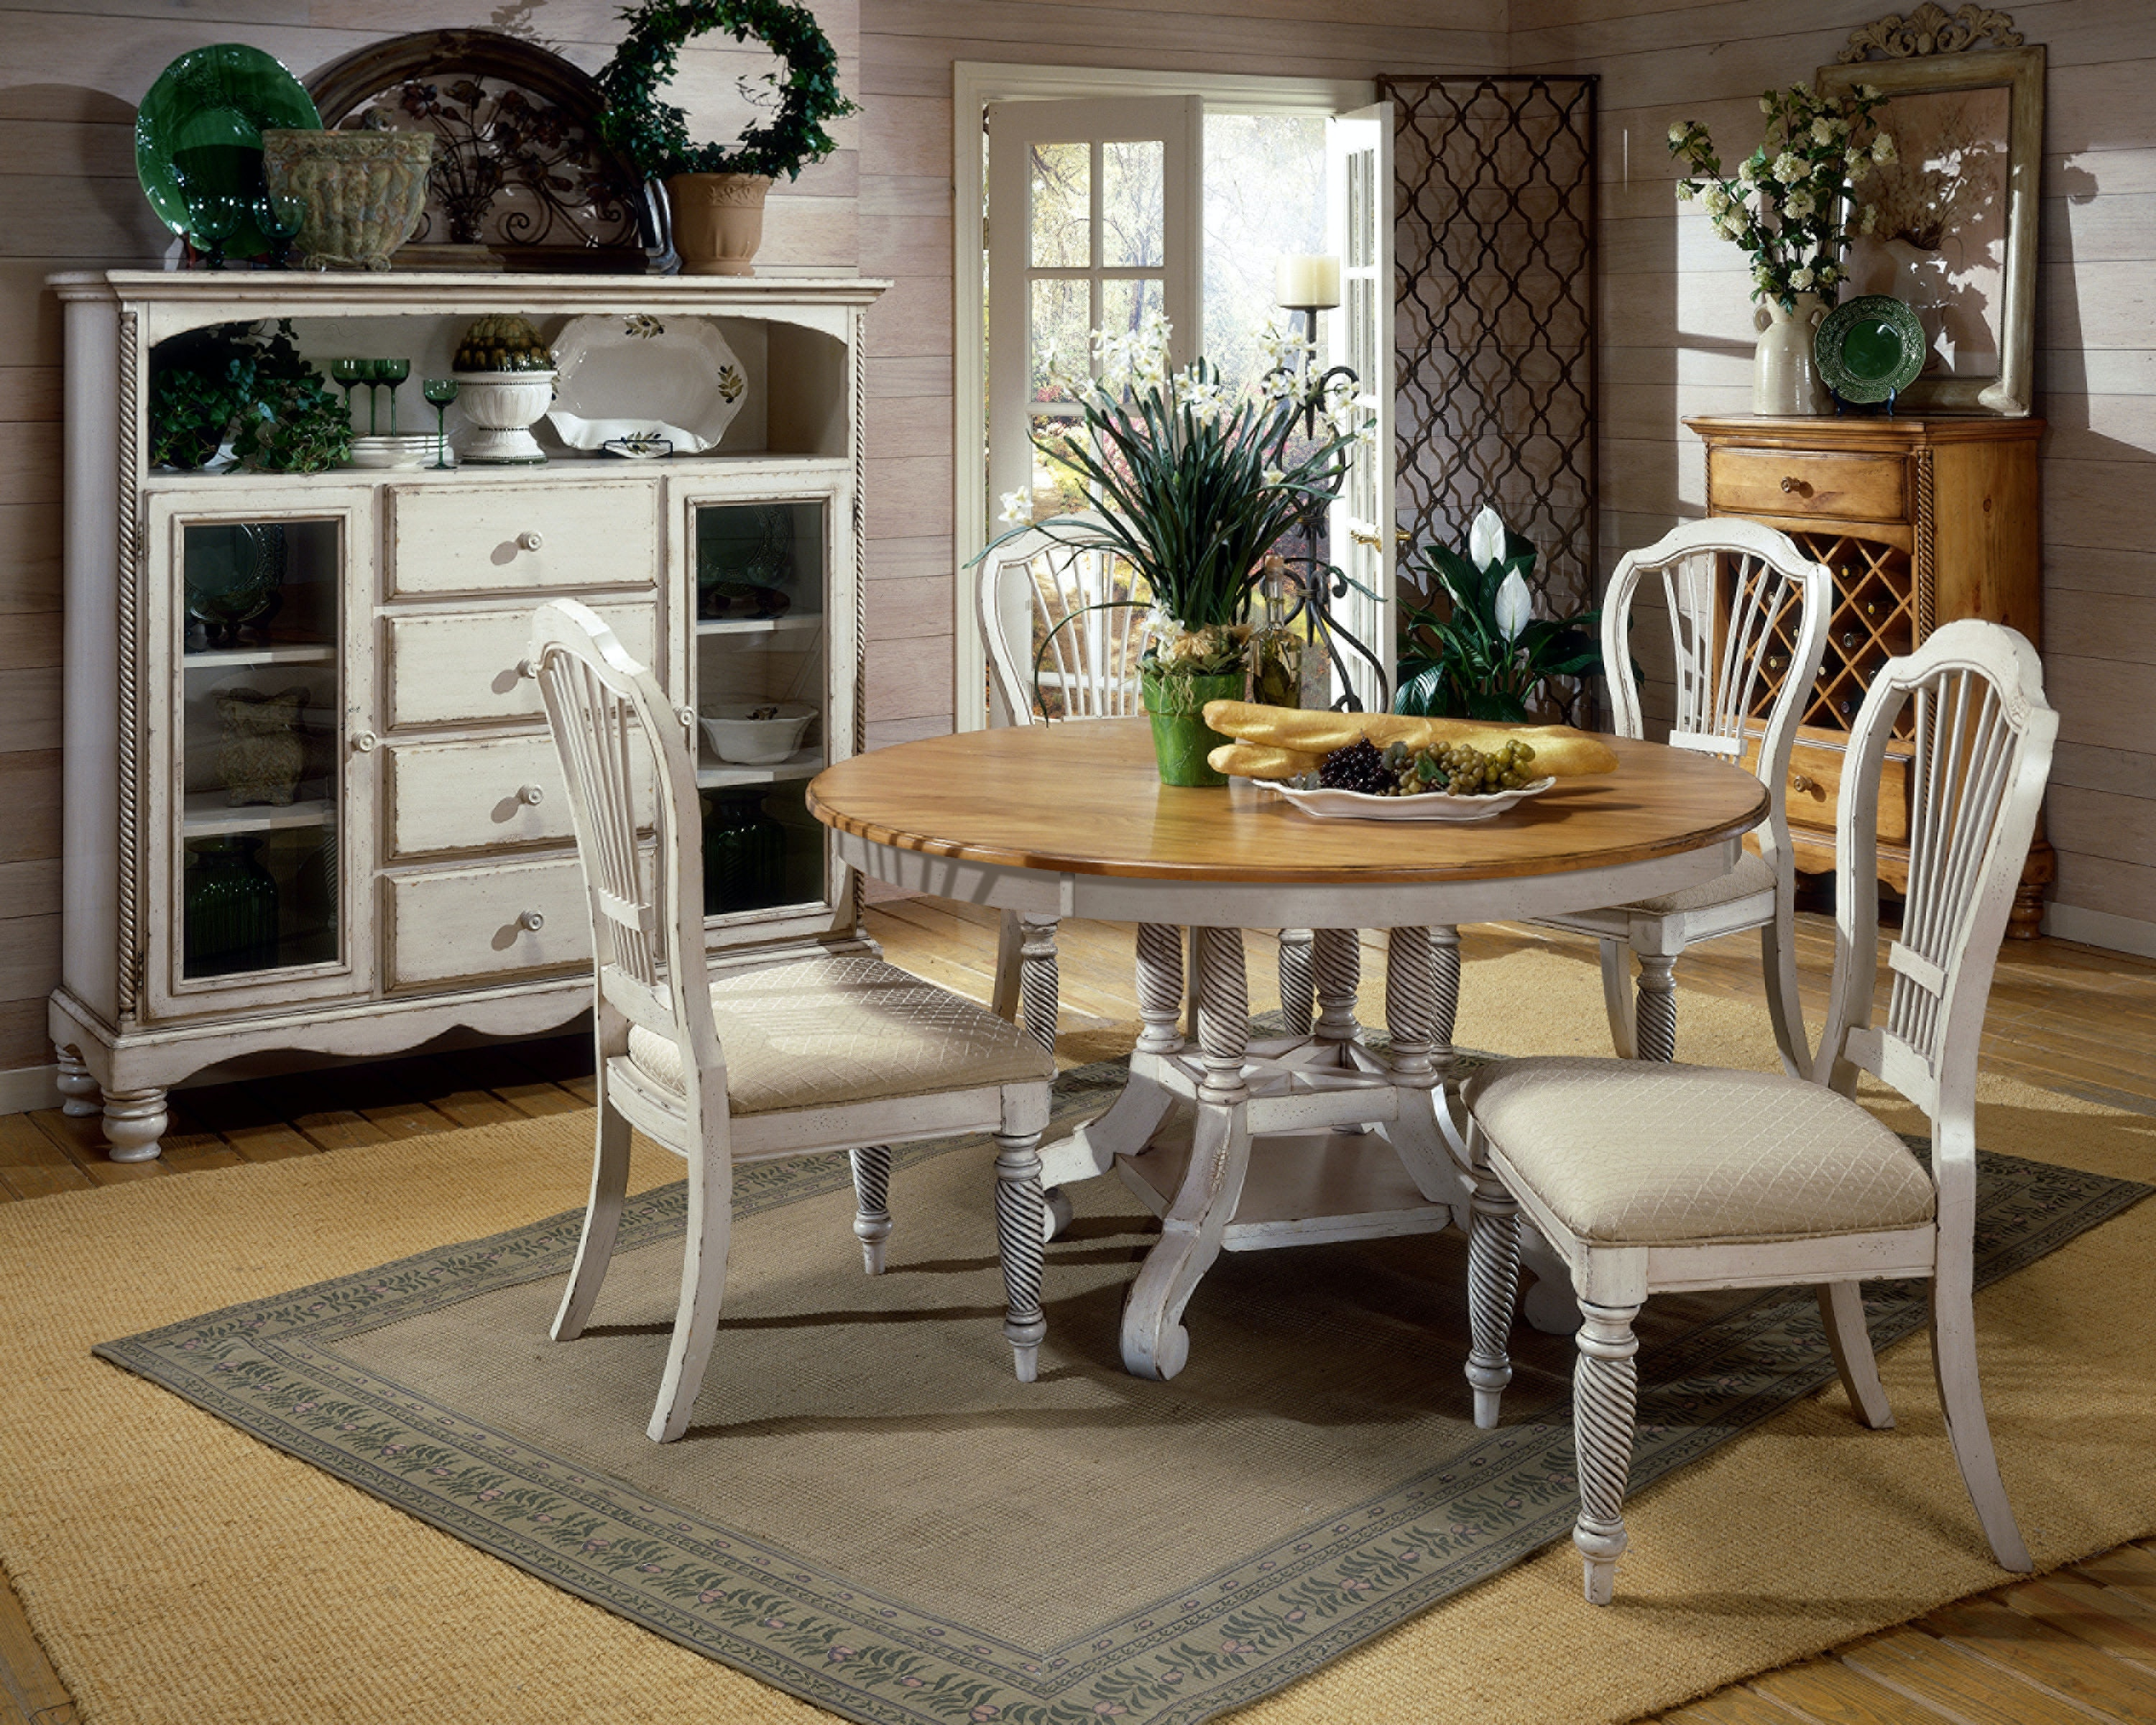 Hillsdale Furniture 7 Piece Round Dining Set With Side Chairs 4508DTBRNDC7